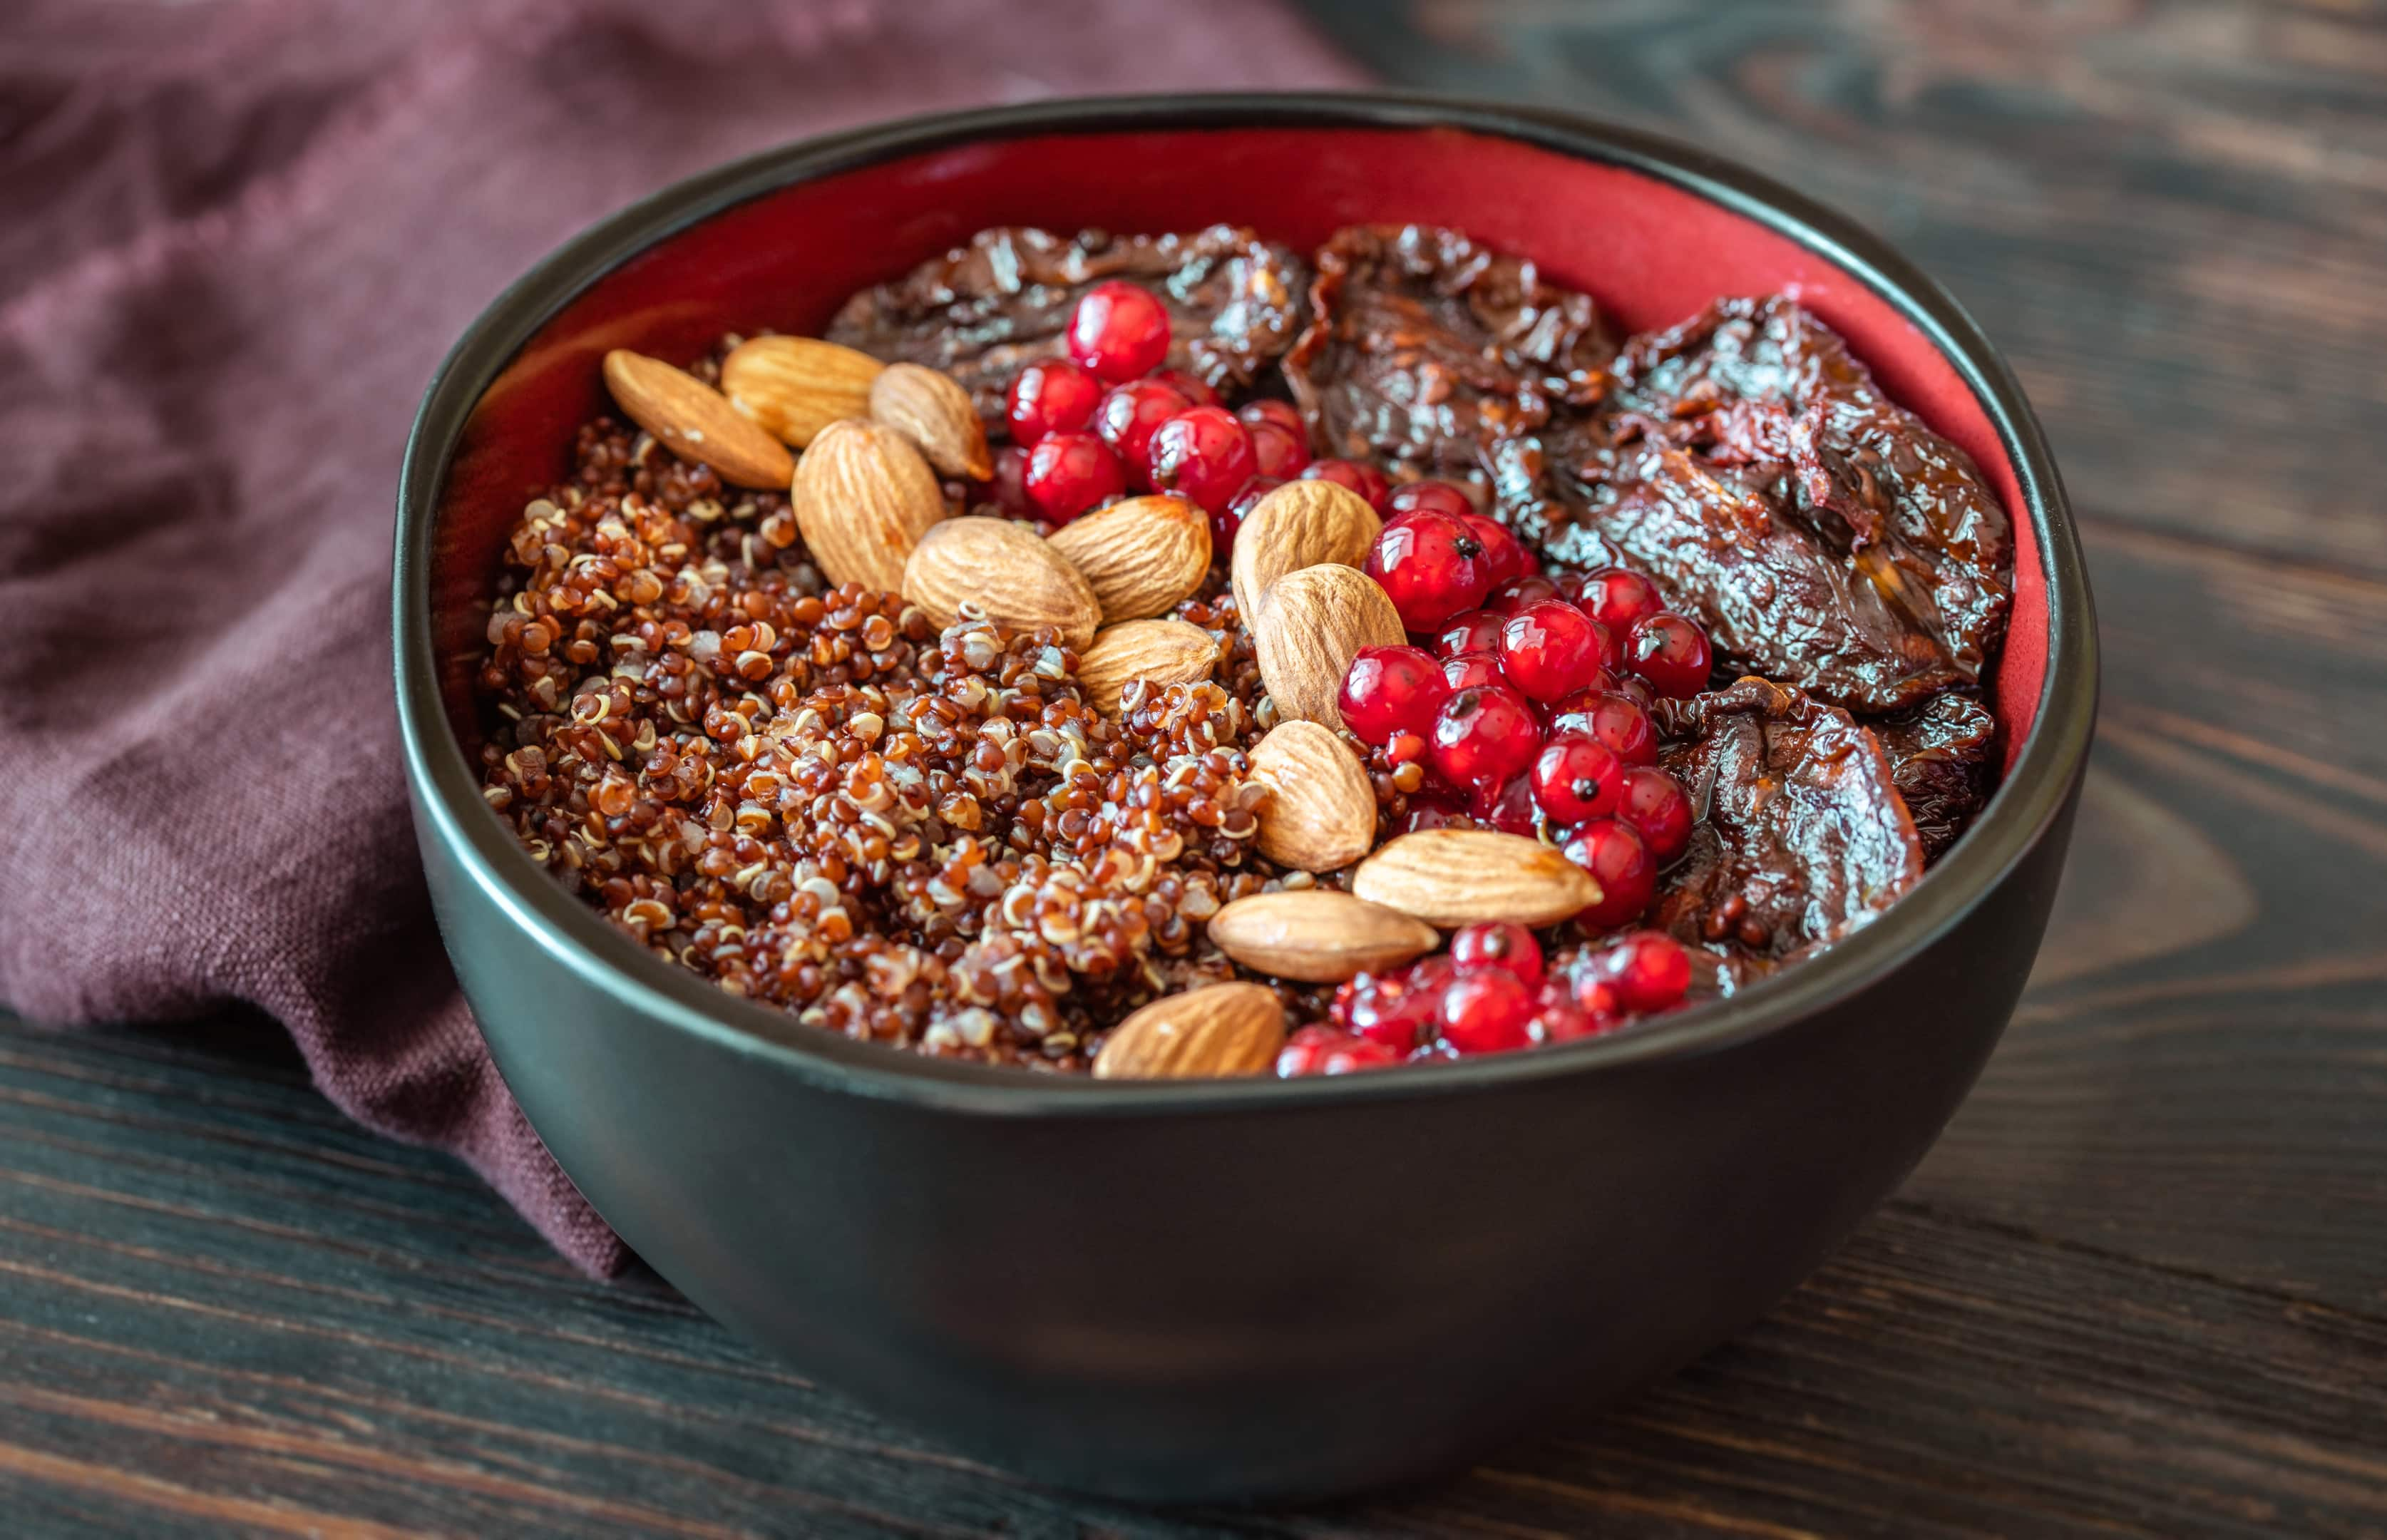 Bowl With Red Quinoa Olives Sun Dried Tomatoes Berries and Almonds